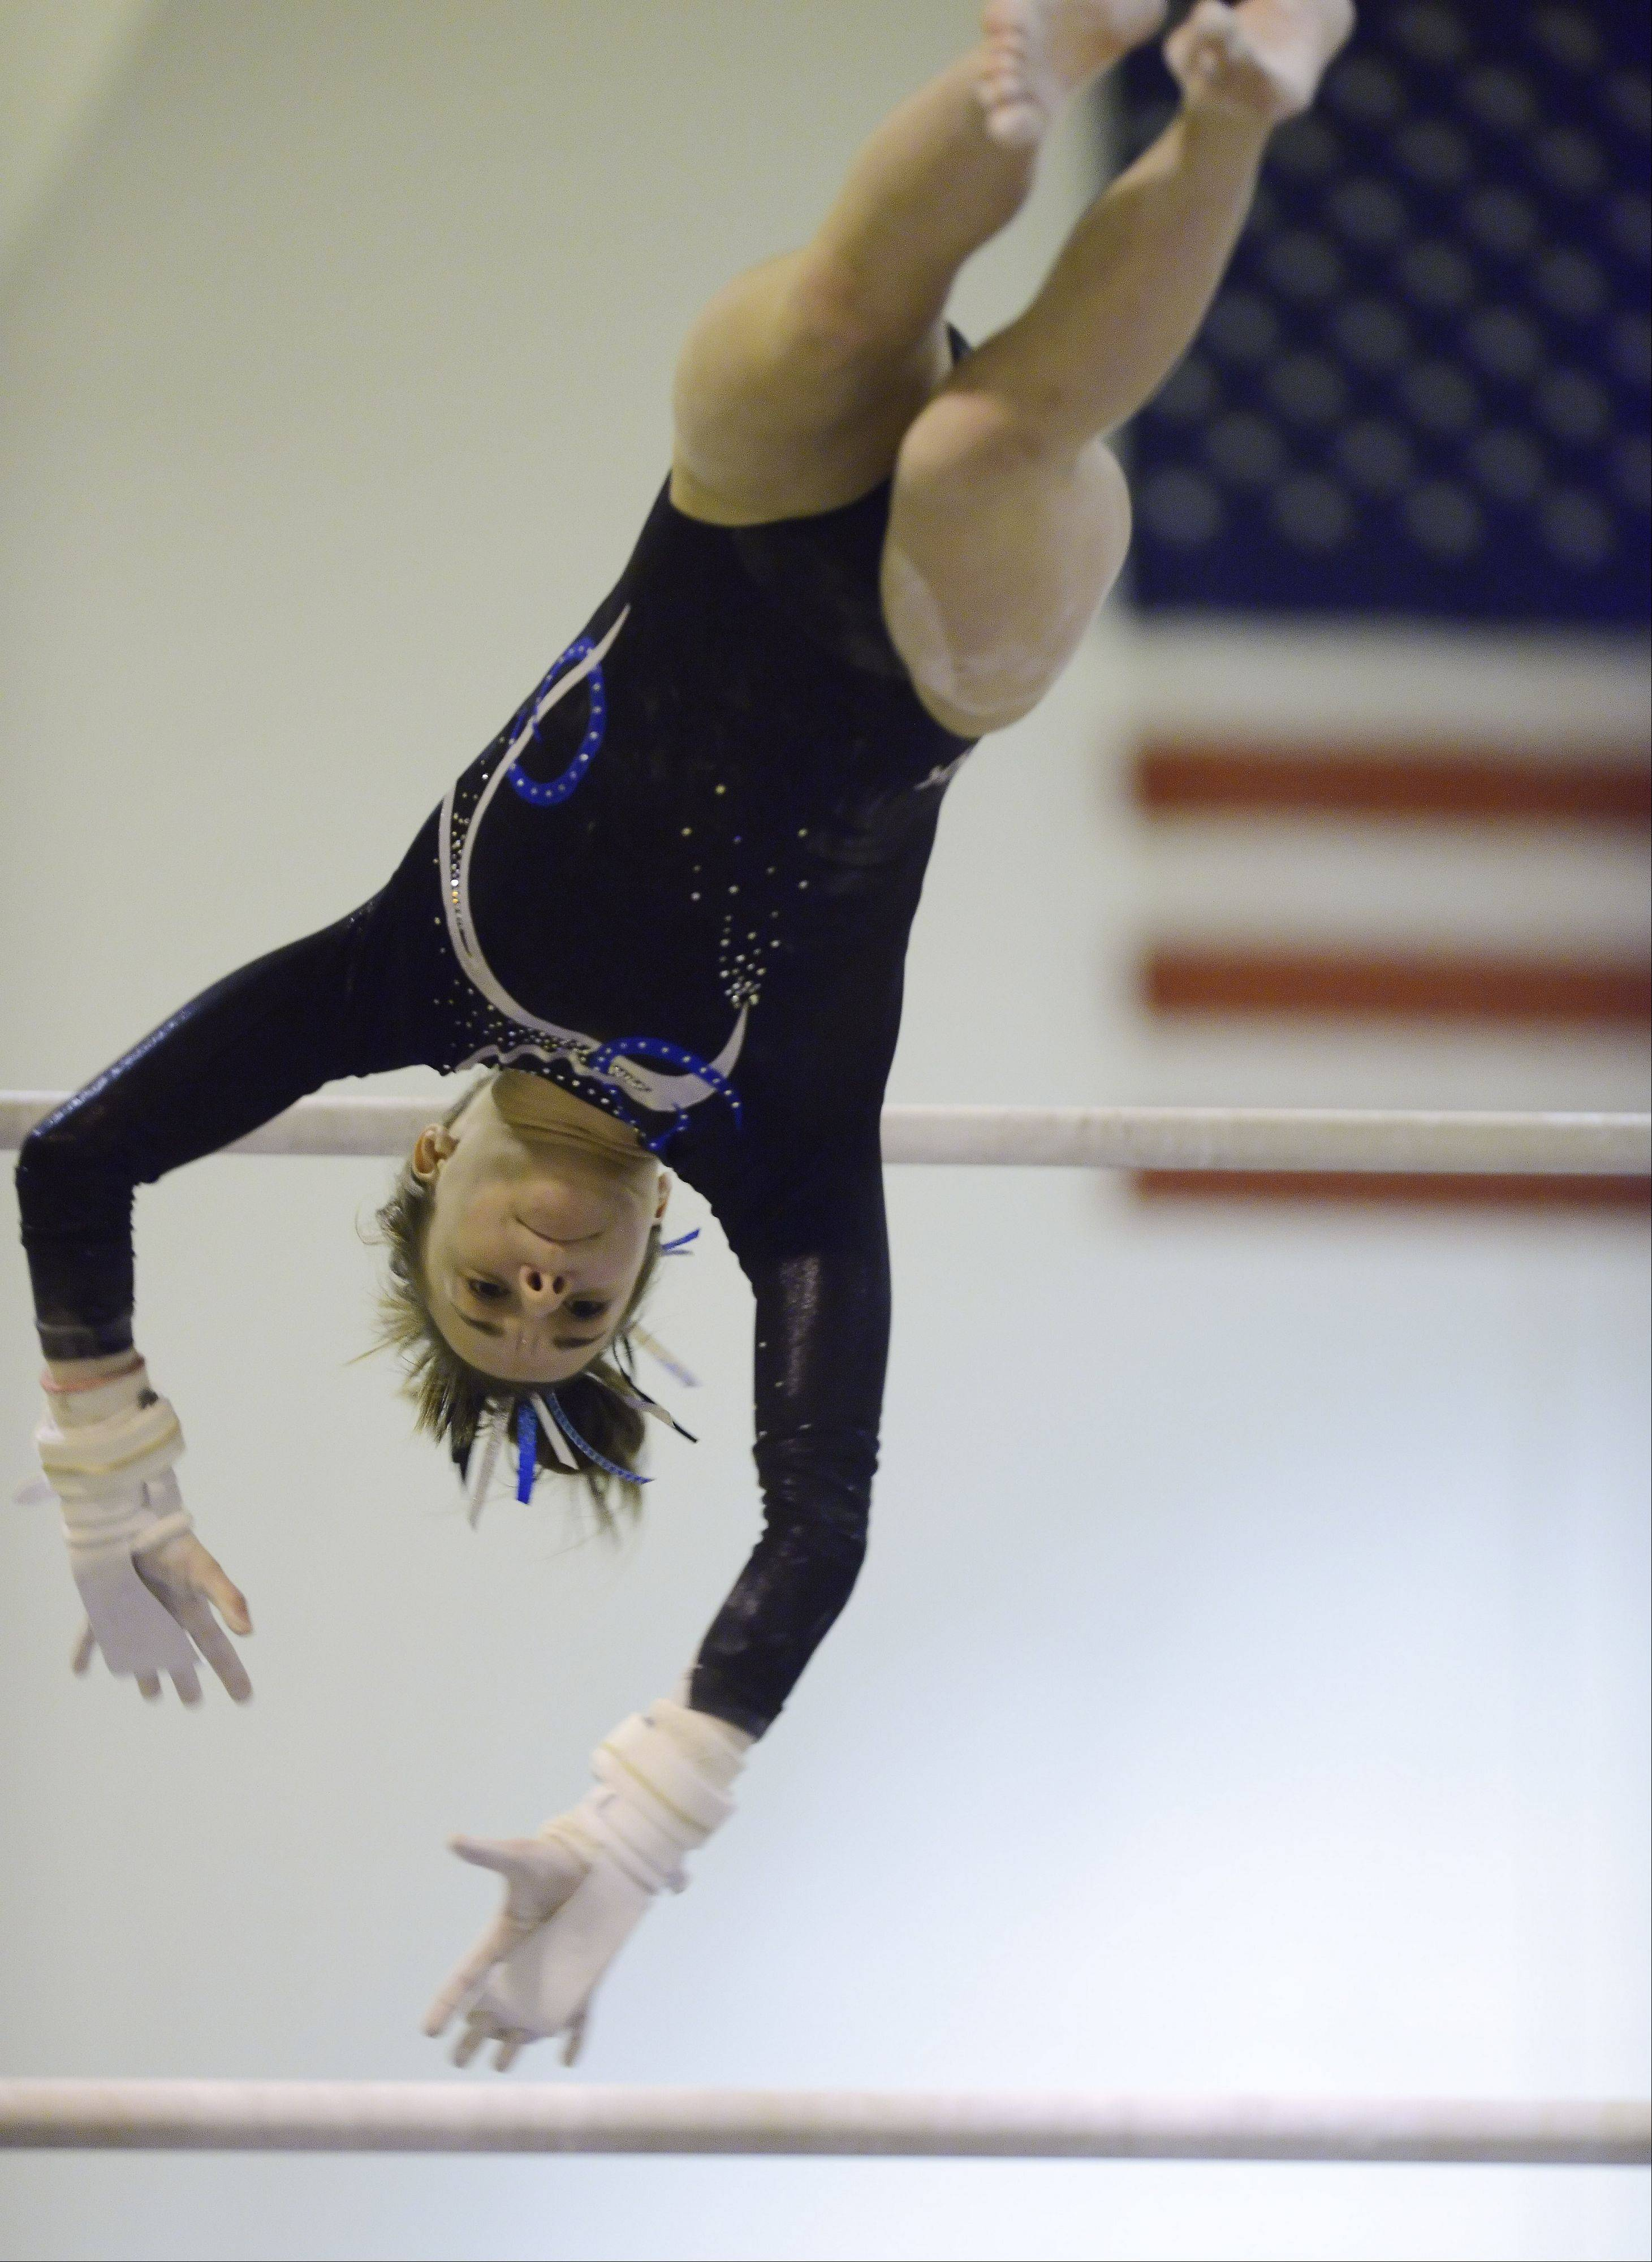 Prospect's Maddie Larock competes on the uneven parallel bars during Wednesday's gymnastics meet.